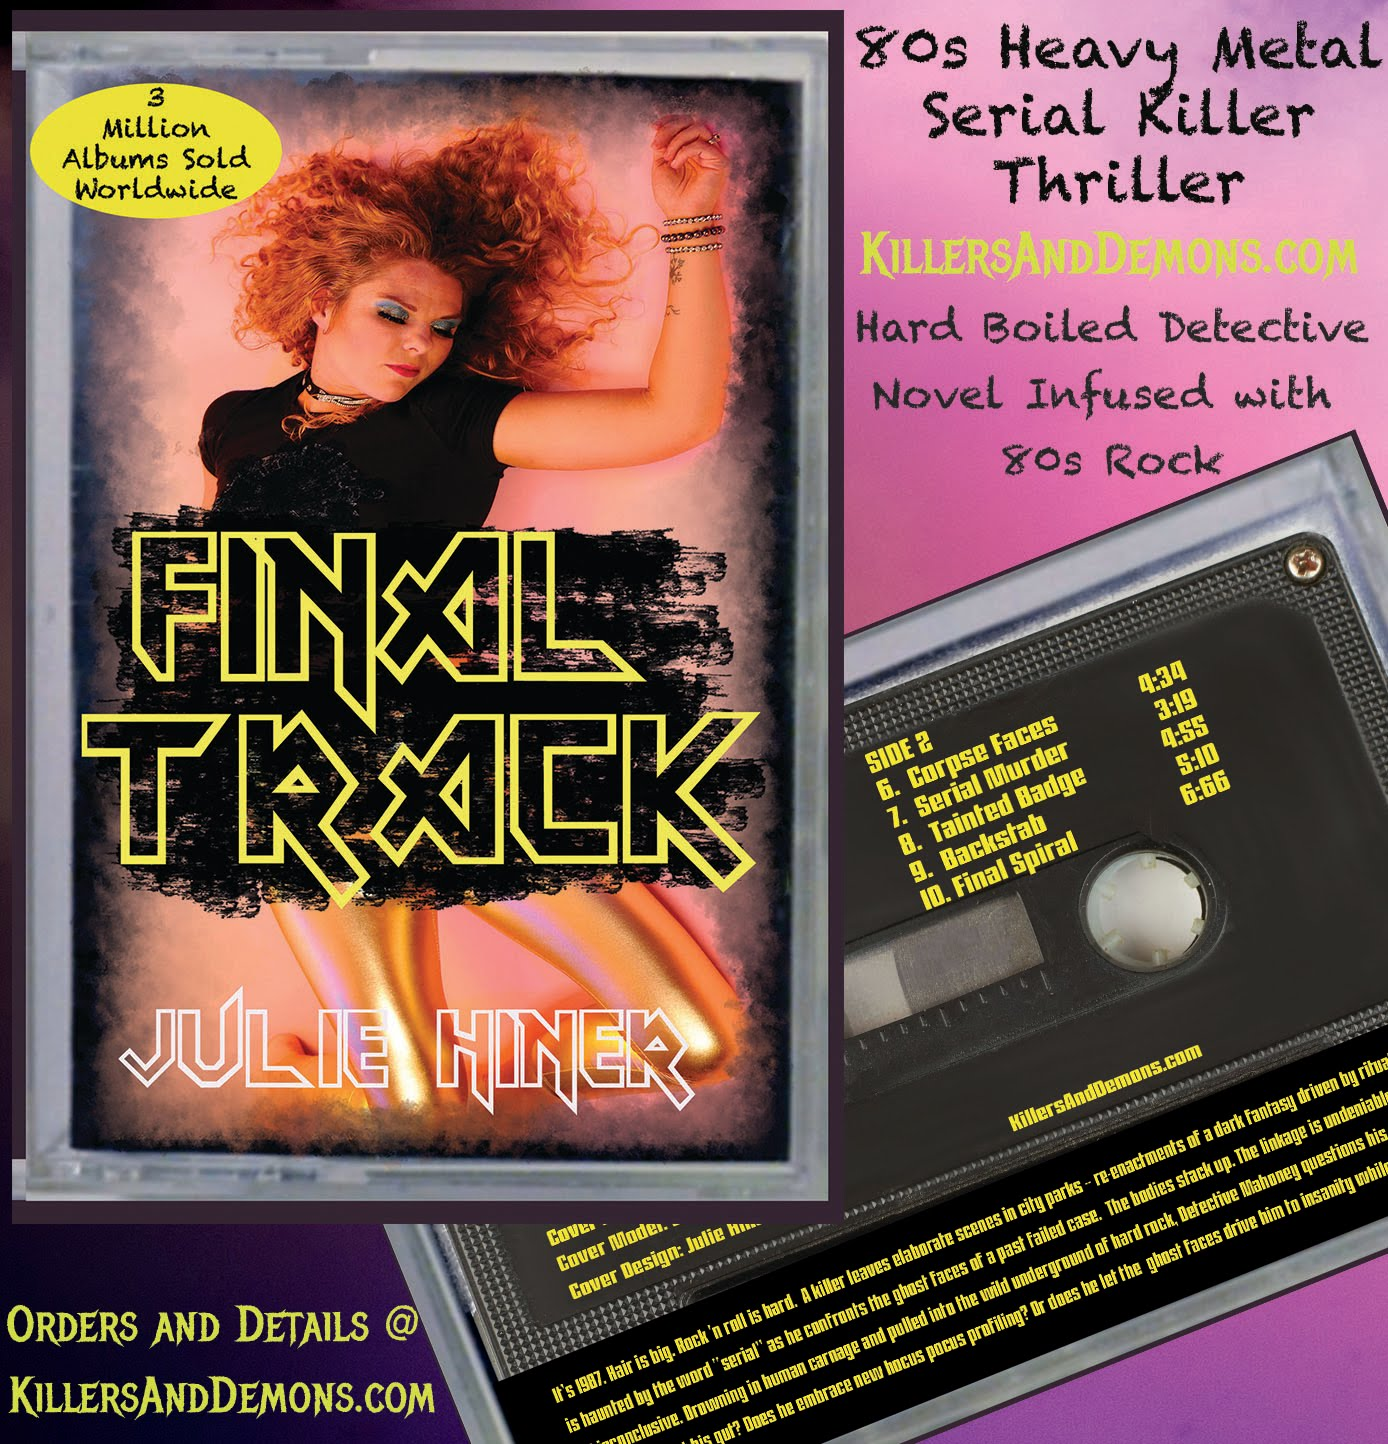 FinalTrackFlyer